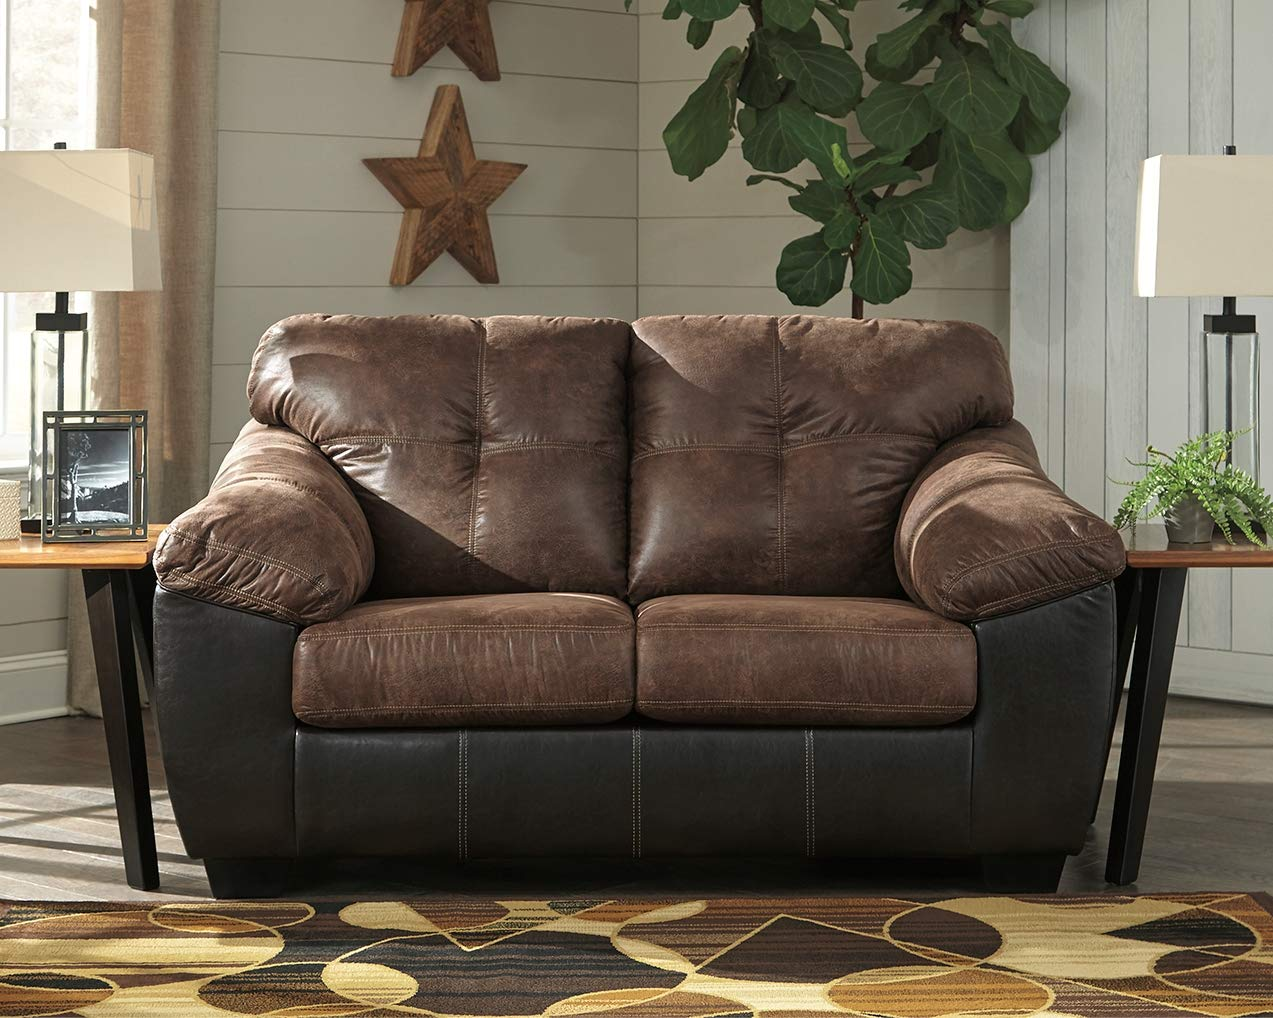 Ashley Furniture Signature Design – Gregale Contemporary Upholstered Loveseat – Coffee Brown